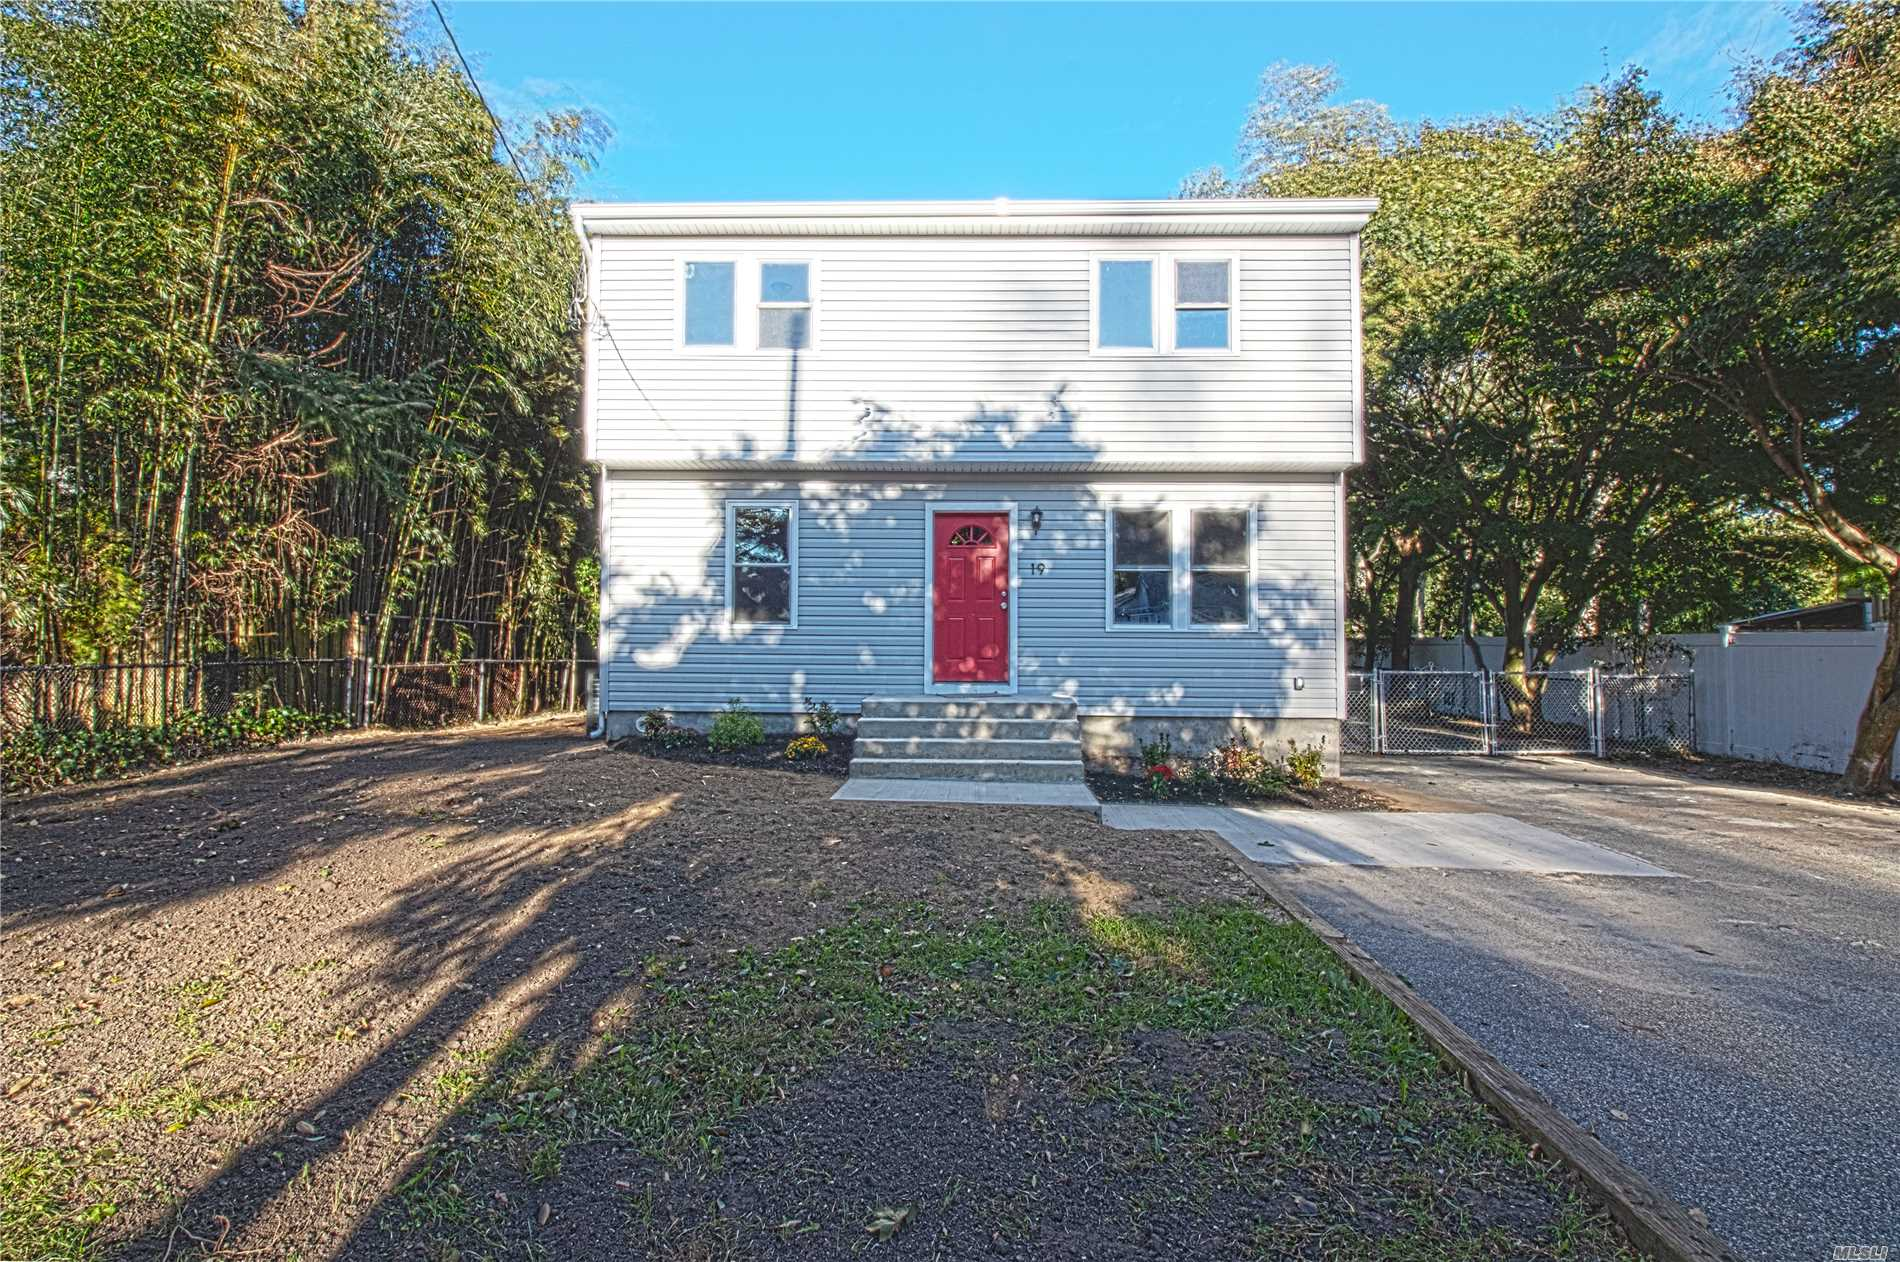 Totally Renovated 4 Bedroom, 2 Bathroom Expanded Cape, Open Floor Plan, Living Rm, Dining Rm, Den, Kitchen With Stainless Steal Appliances.Private Driveway. Full Unfinished Basement With Outside Entrance. New Roof And Siding